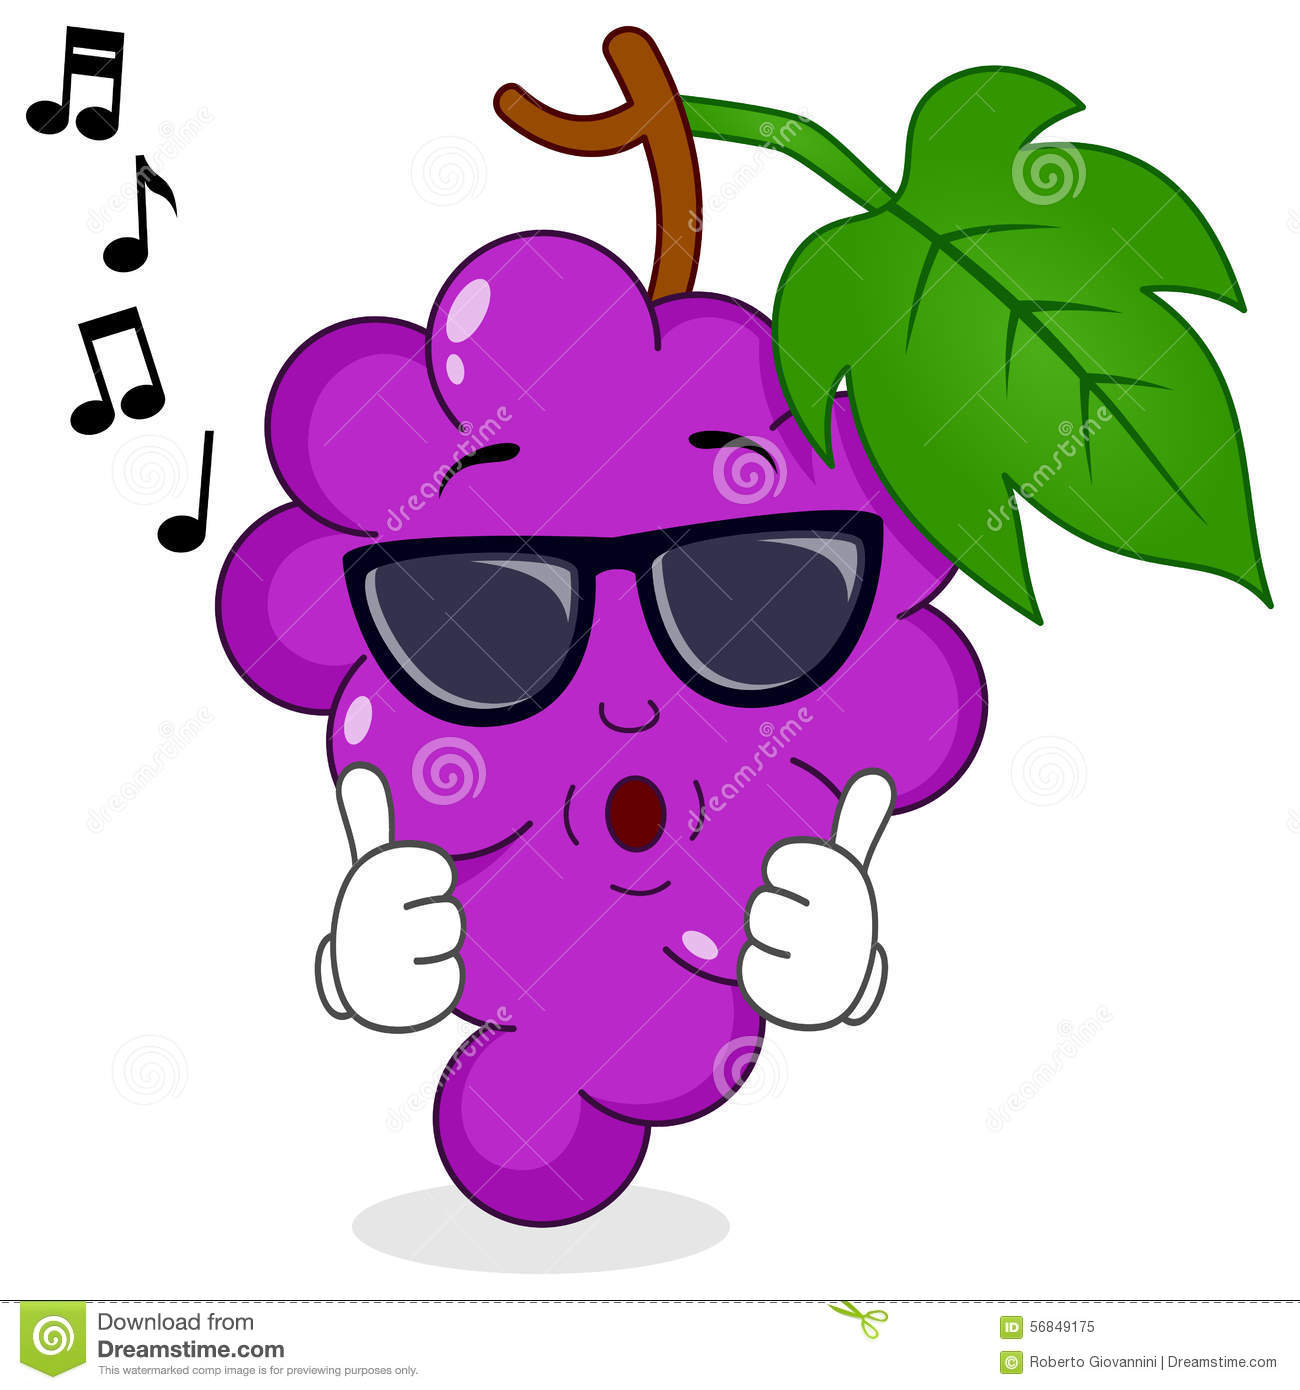 Bunch Of Grapes Whistling With Sunglasses Stock Vector - Image ...